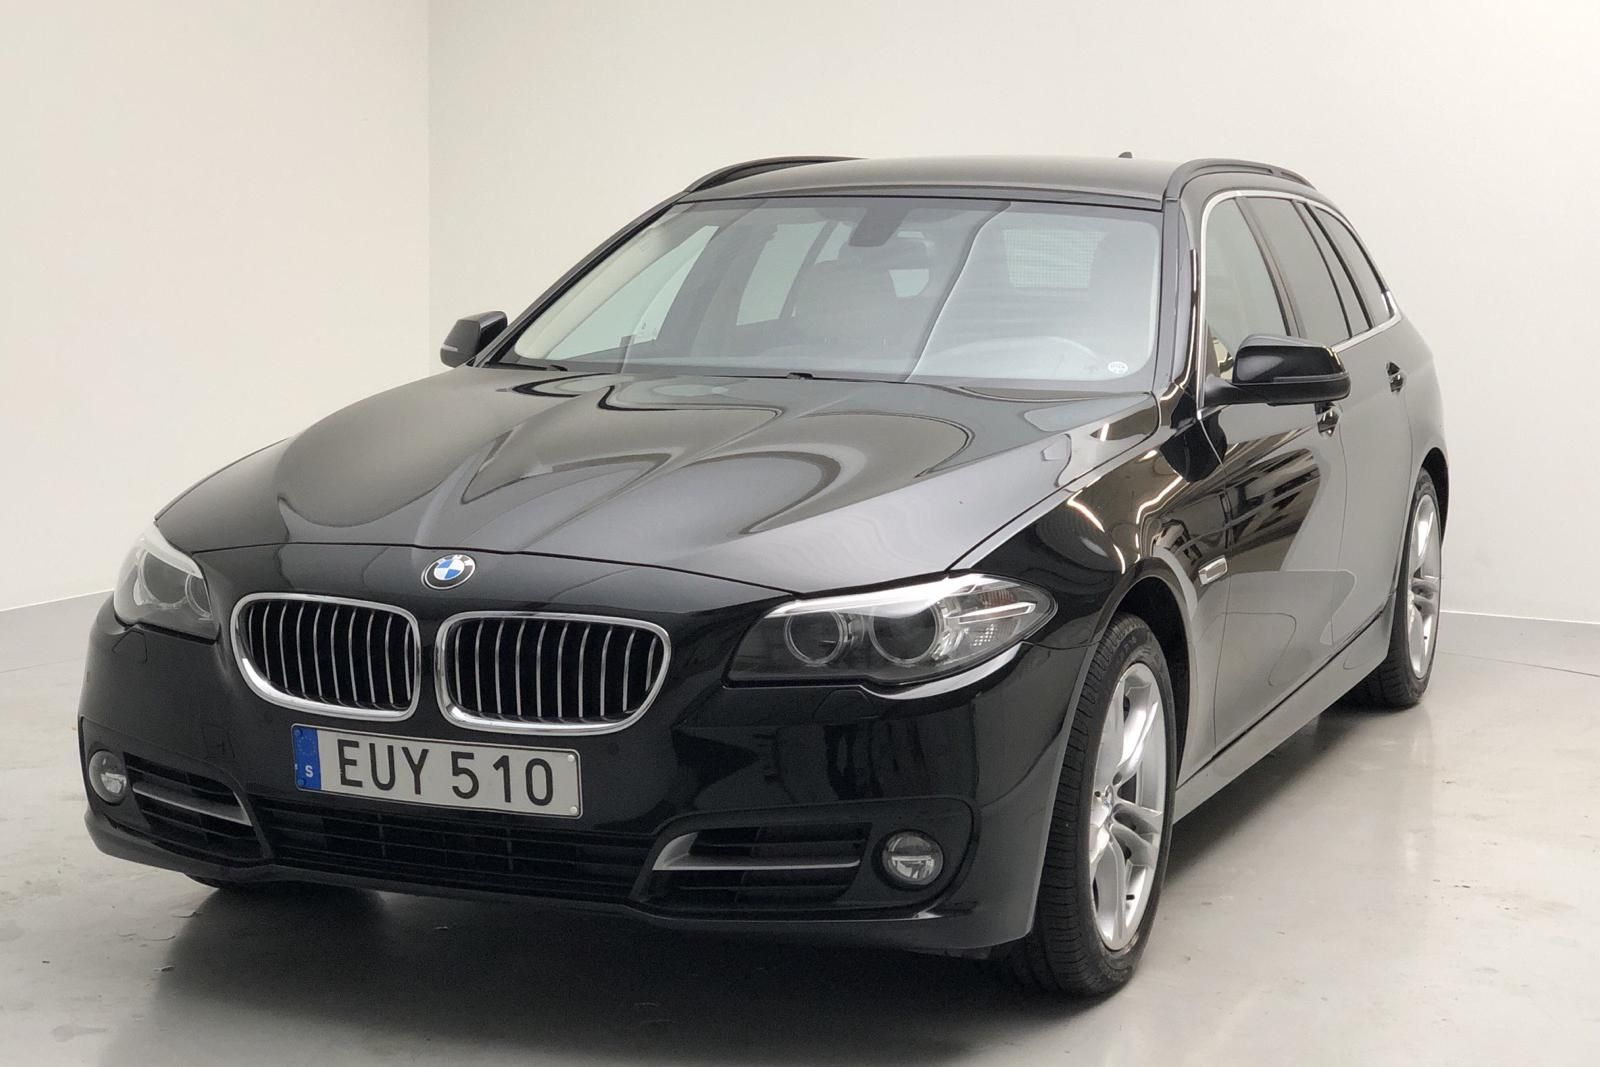 BMW 525d Touring, F11 (218 PS)